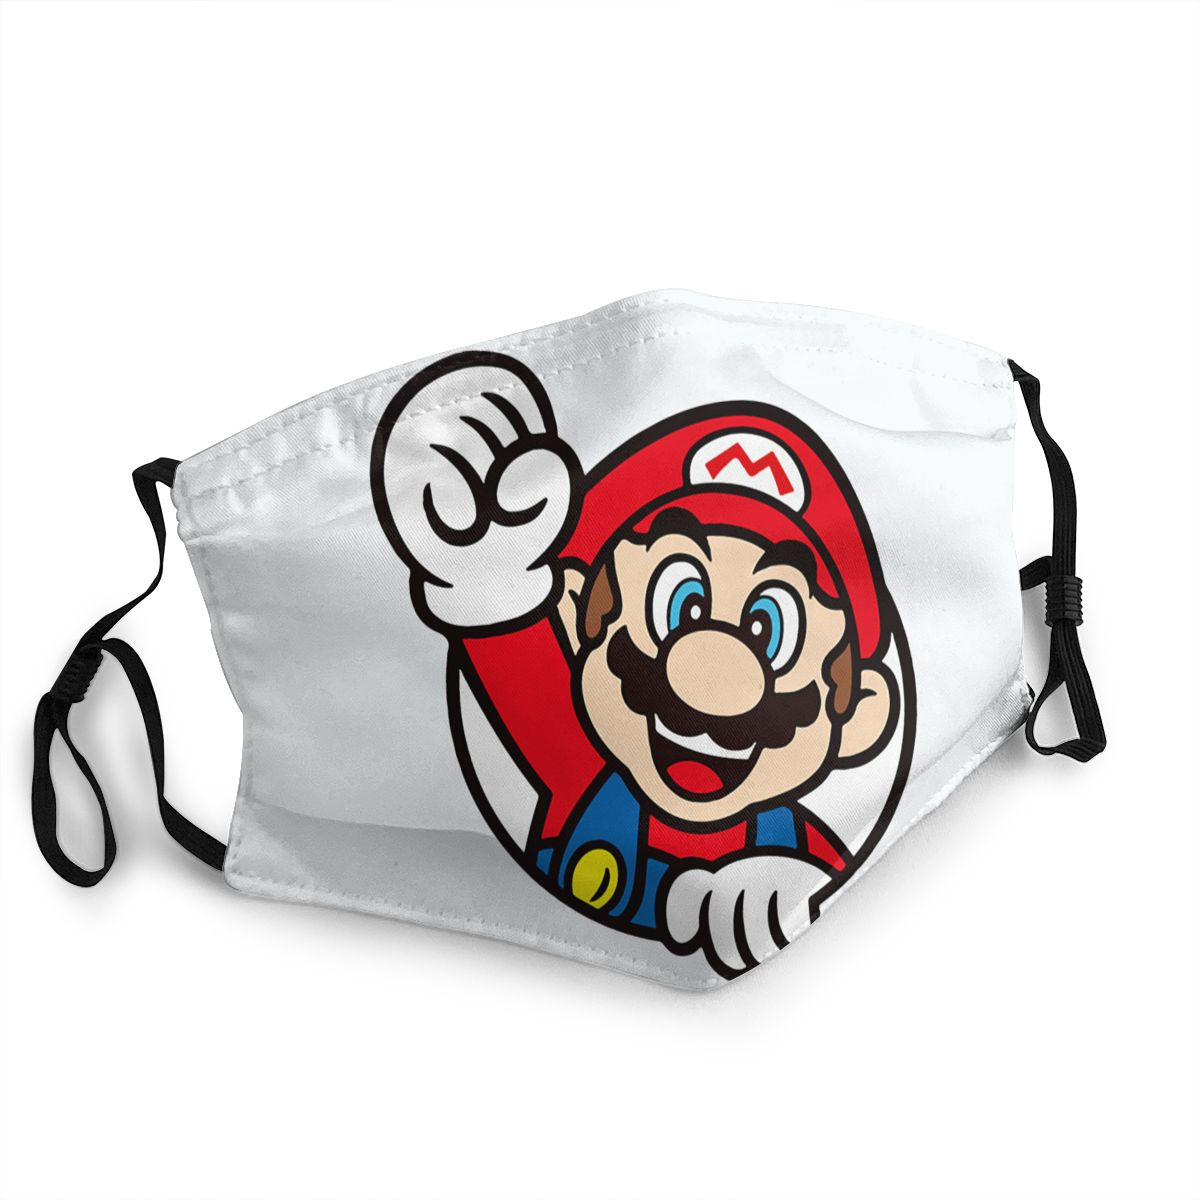 Super Mario Reusable Face Mask Anti Bacterial Dustproof Mask Protection Cover Respirator Mouth Muffle